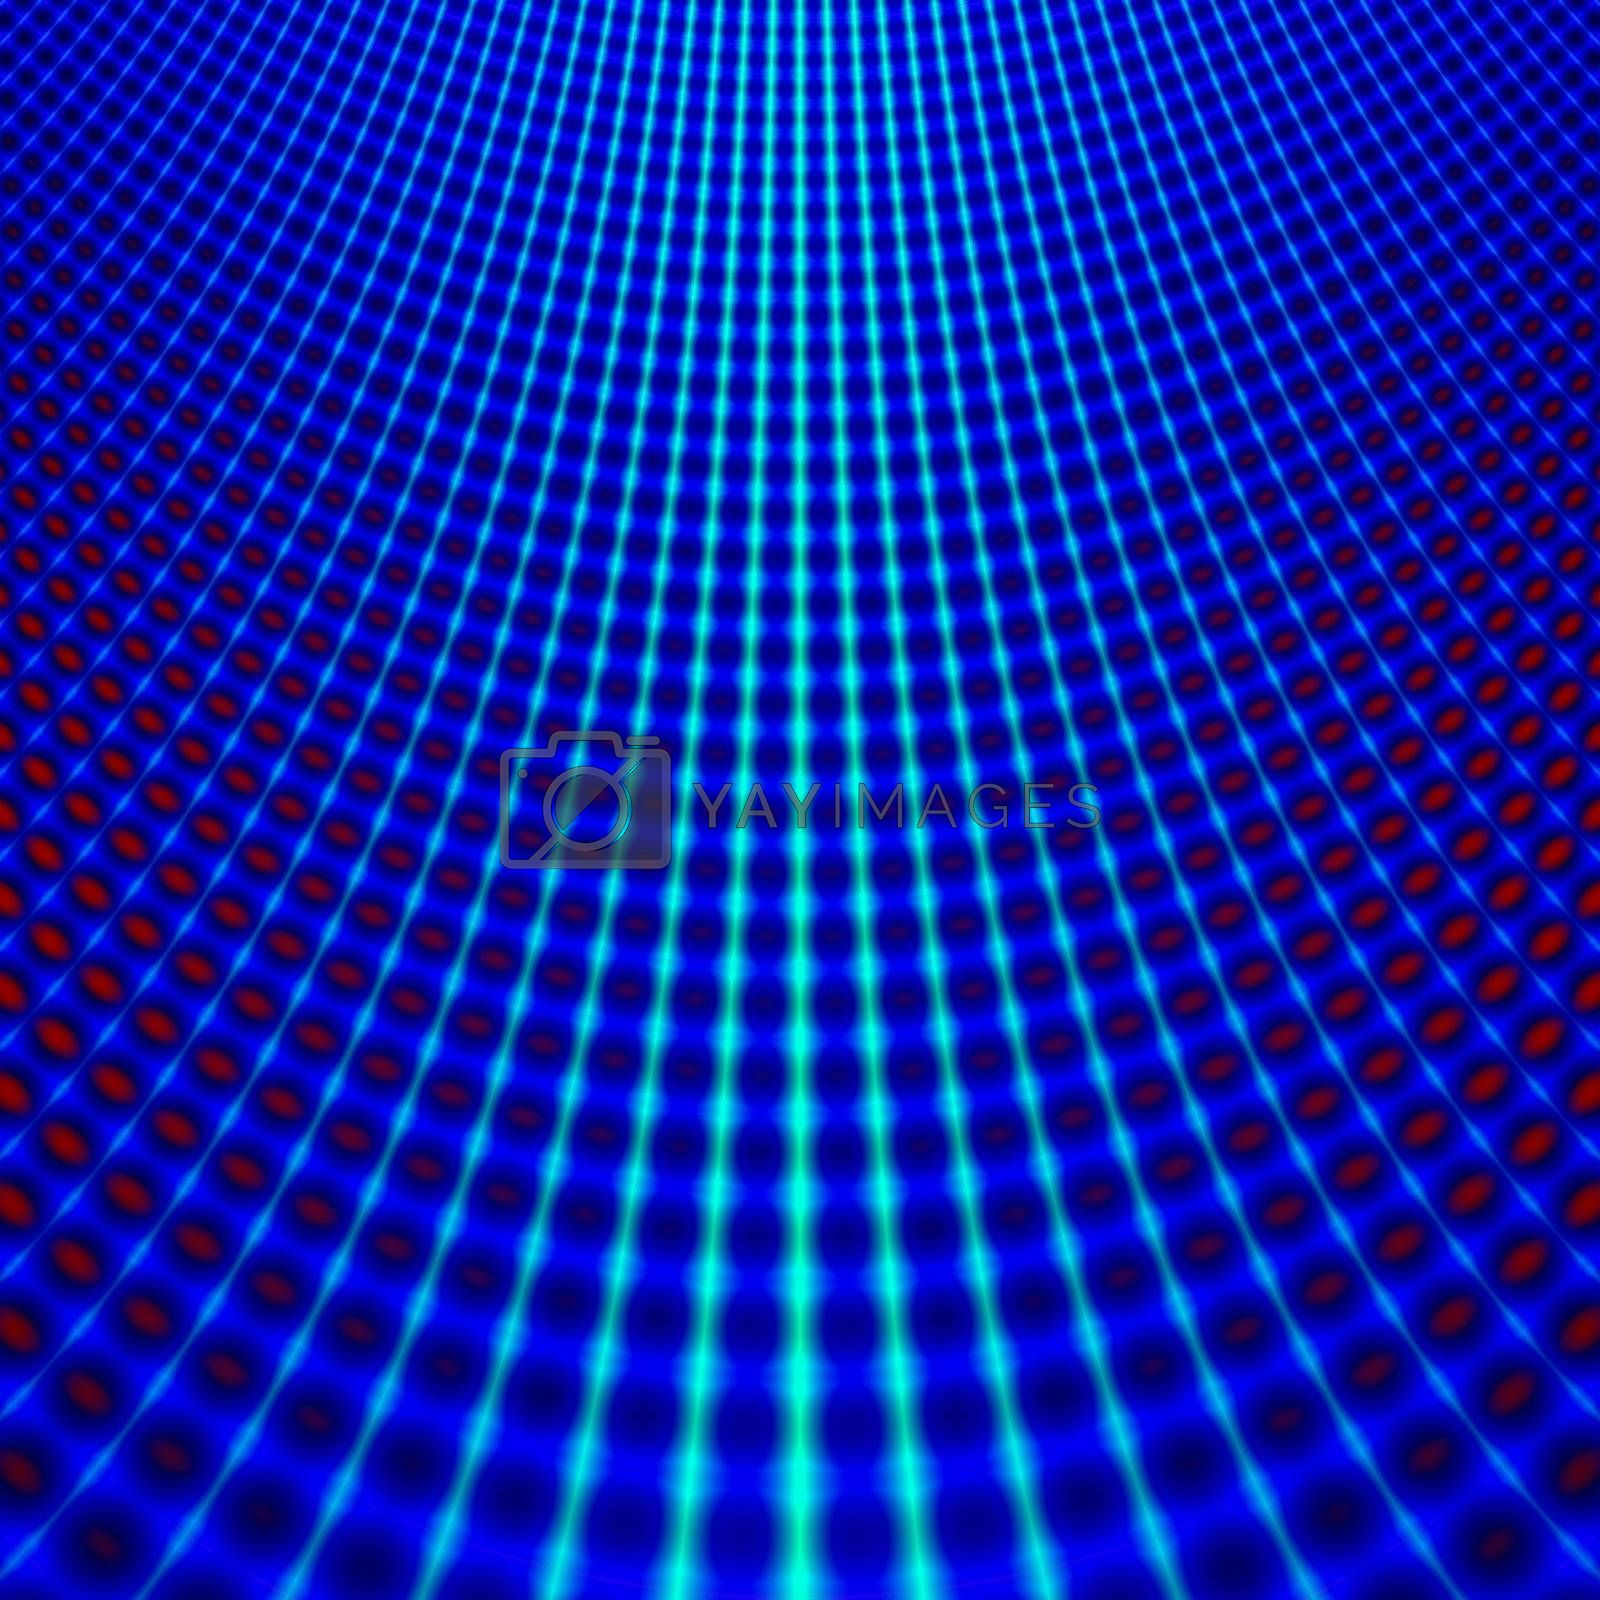 background with a blue bend grid structure